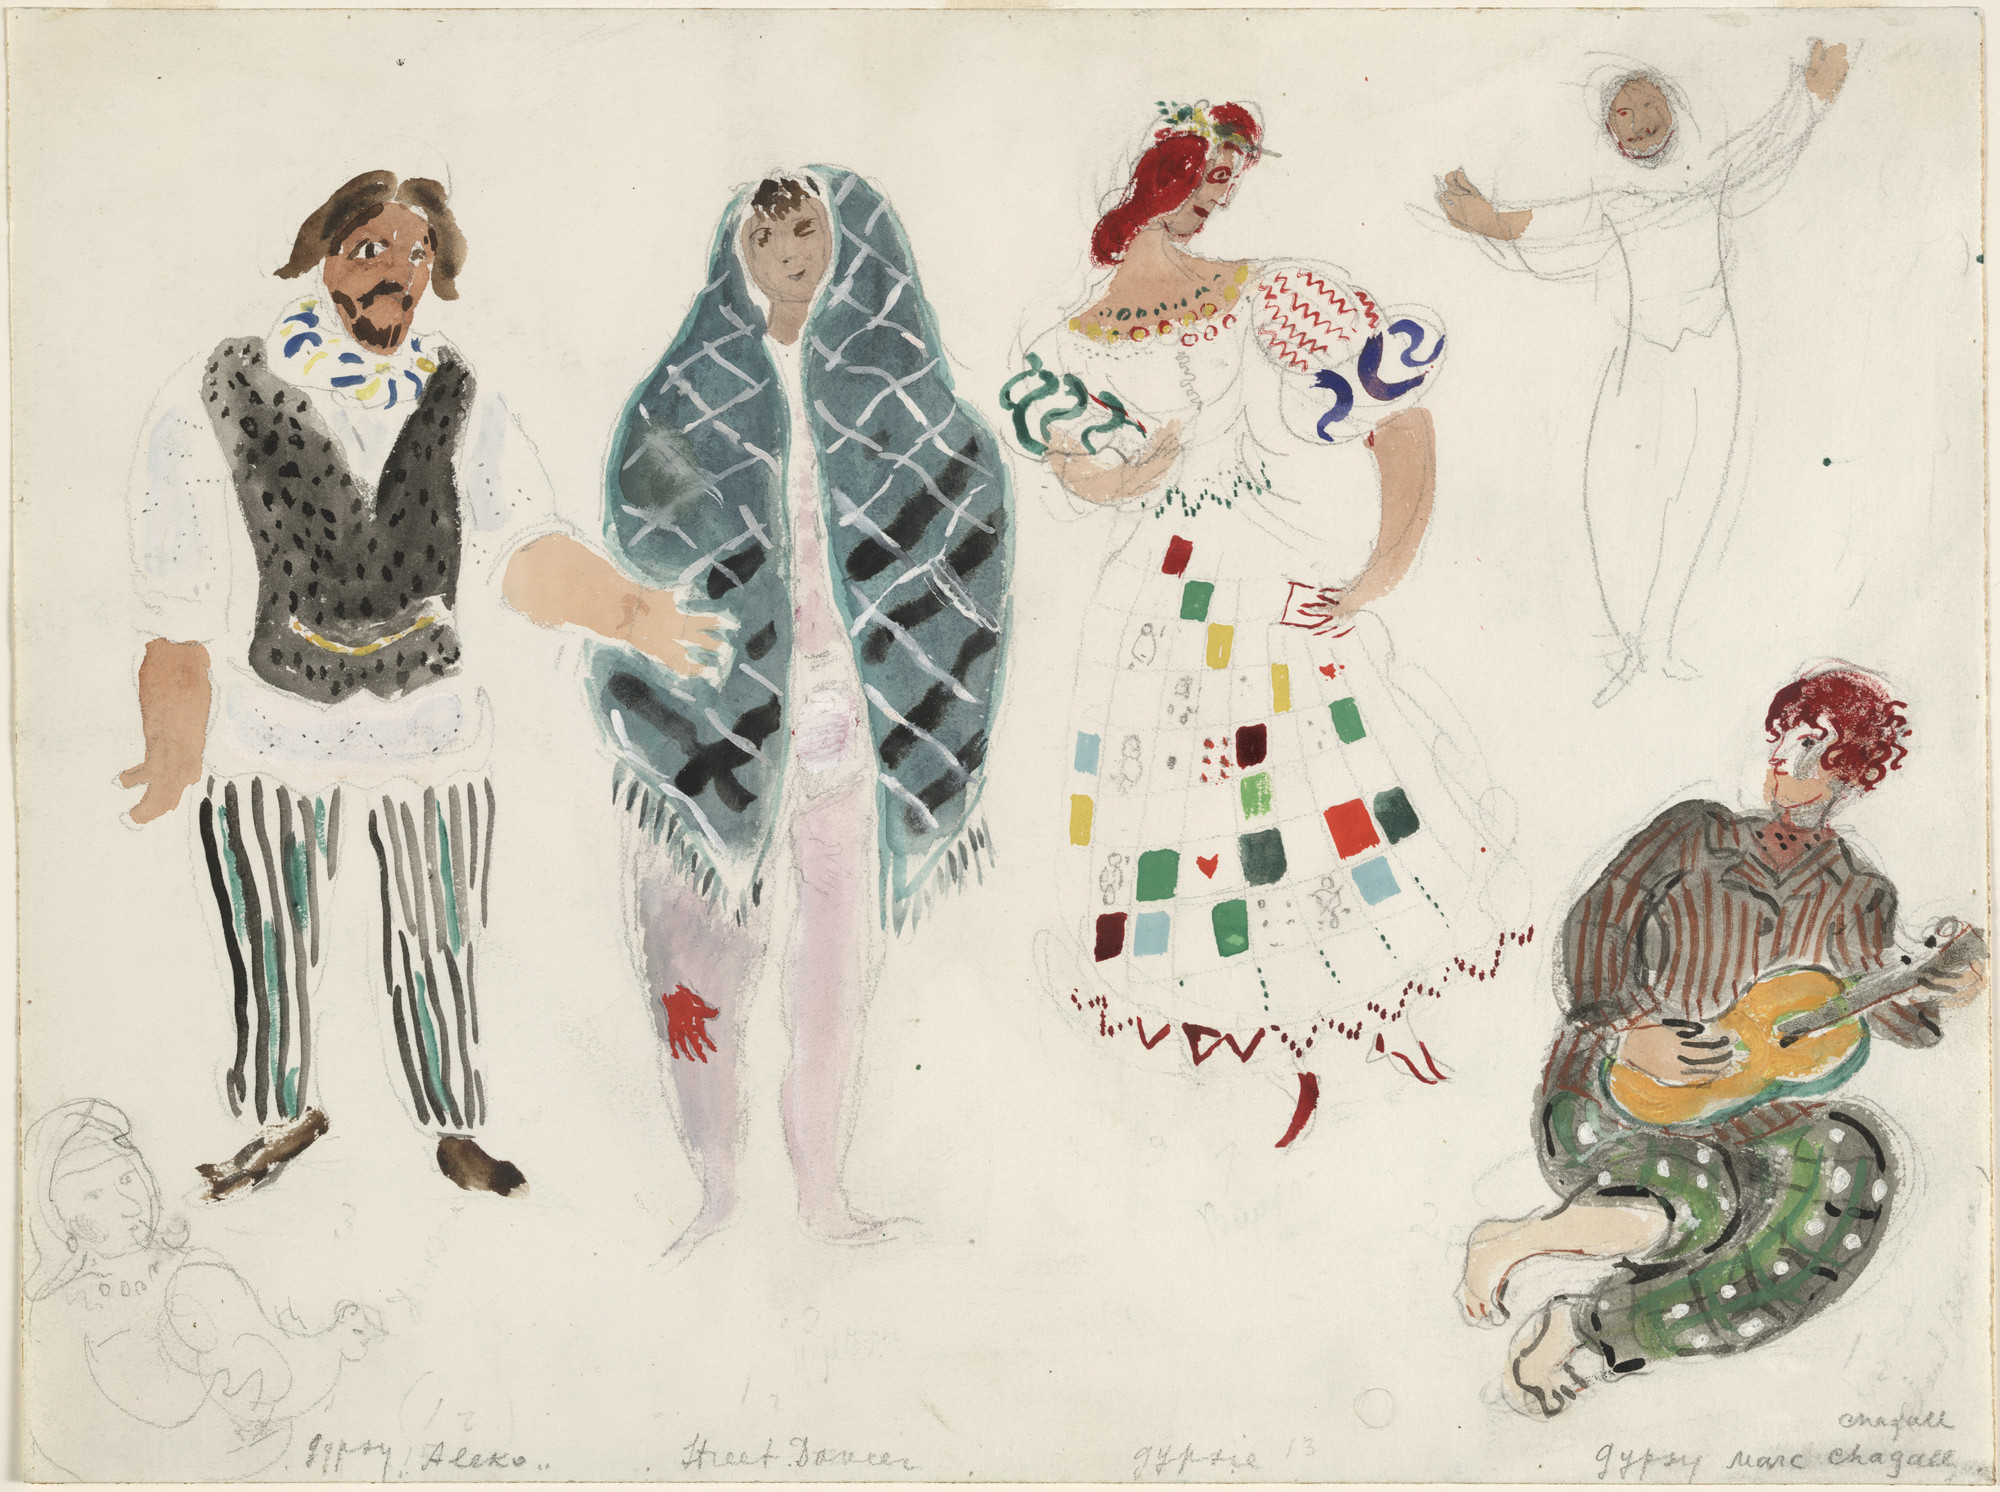 Marc Chagall. A Street Dancer and Gypsies, costume design for Aleko (Scene II). (1942)